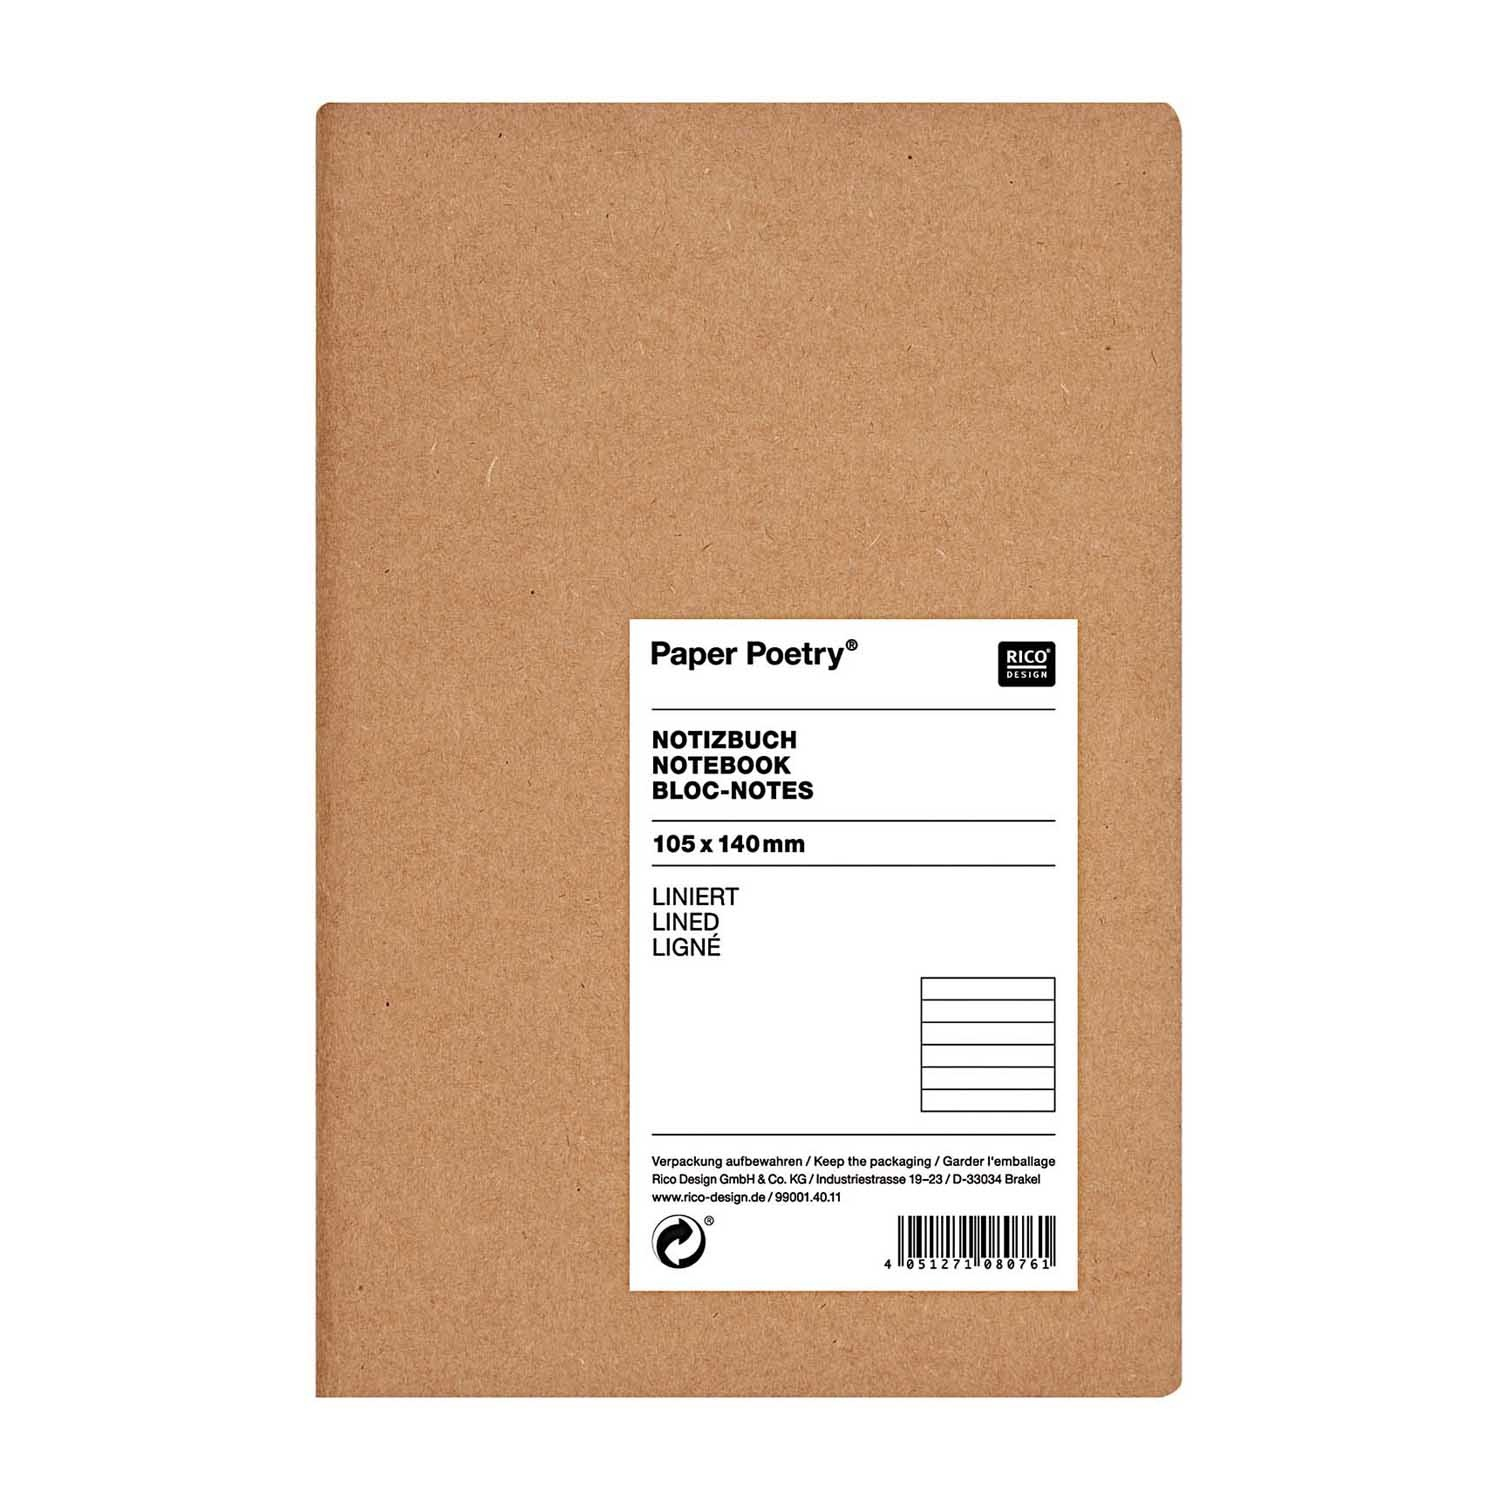 Rico NAY NOTEBOOK KRAFT, LINED FSC MIX  105 X 140 MM, 40 SHEETS, 80 G